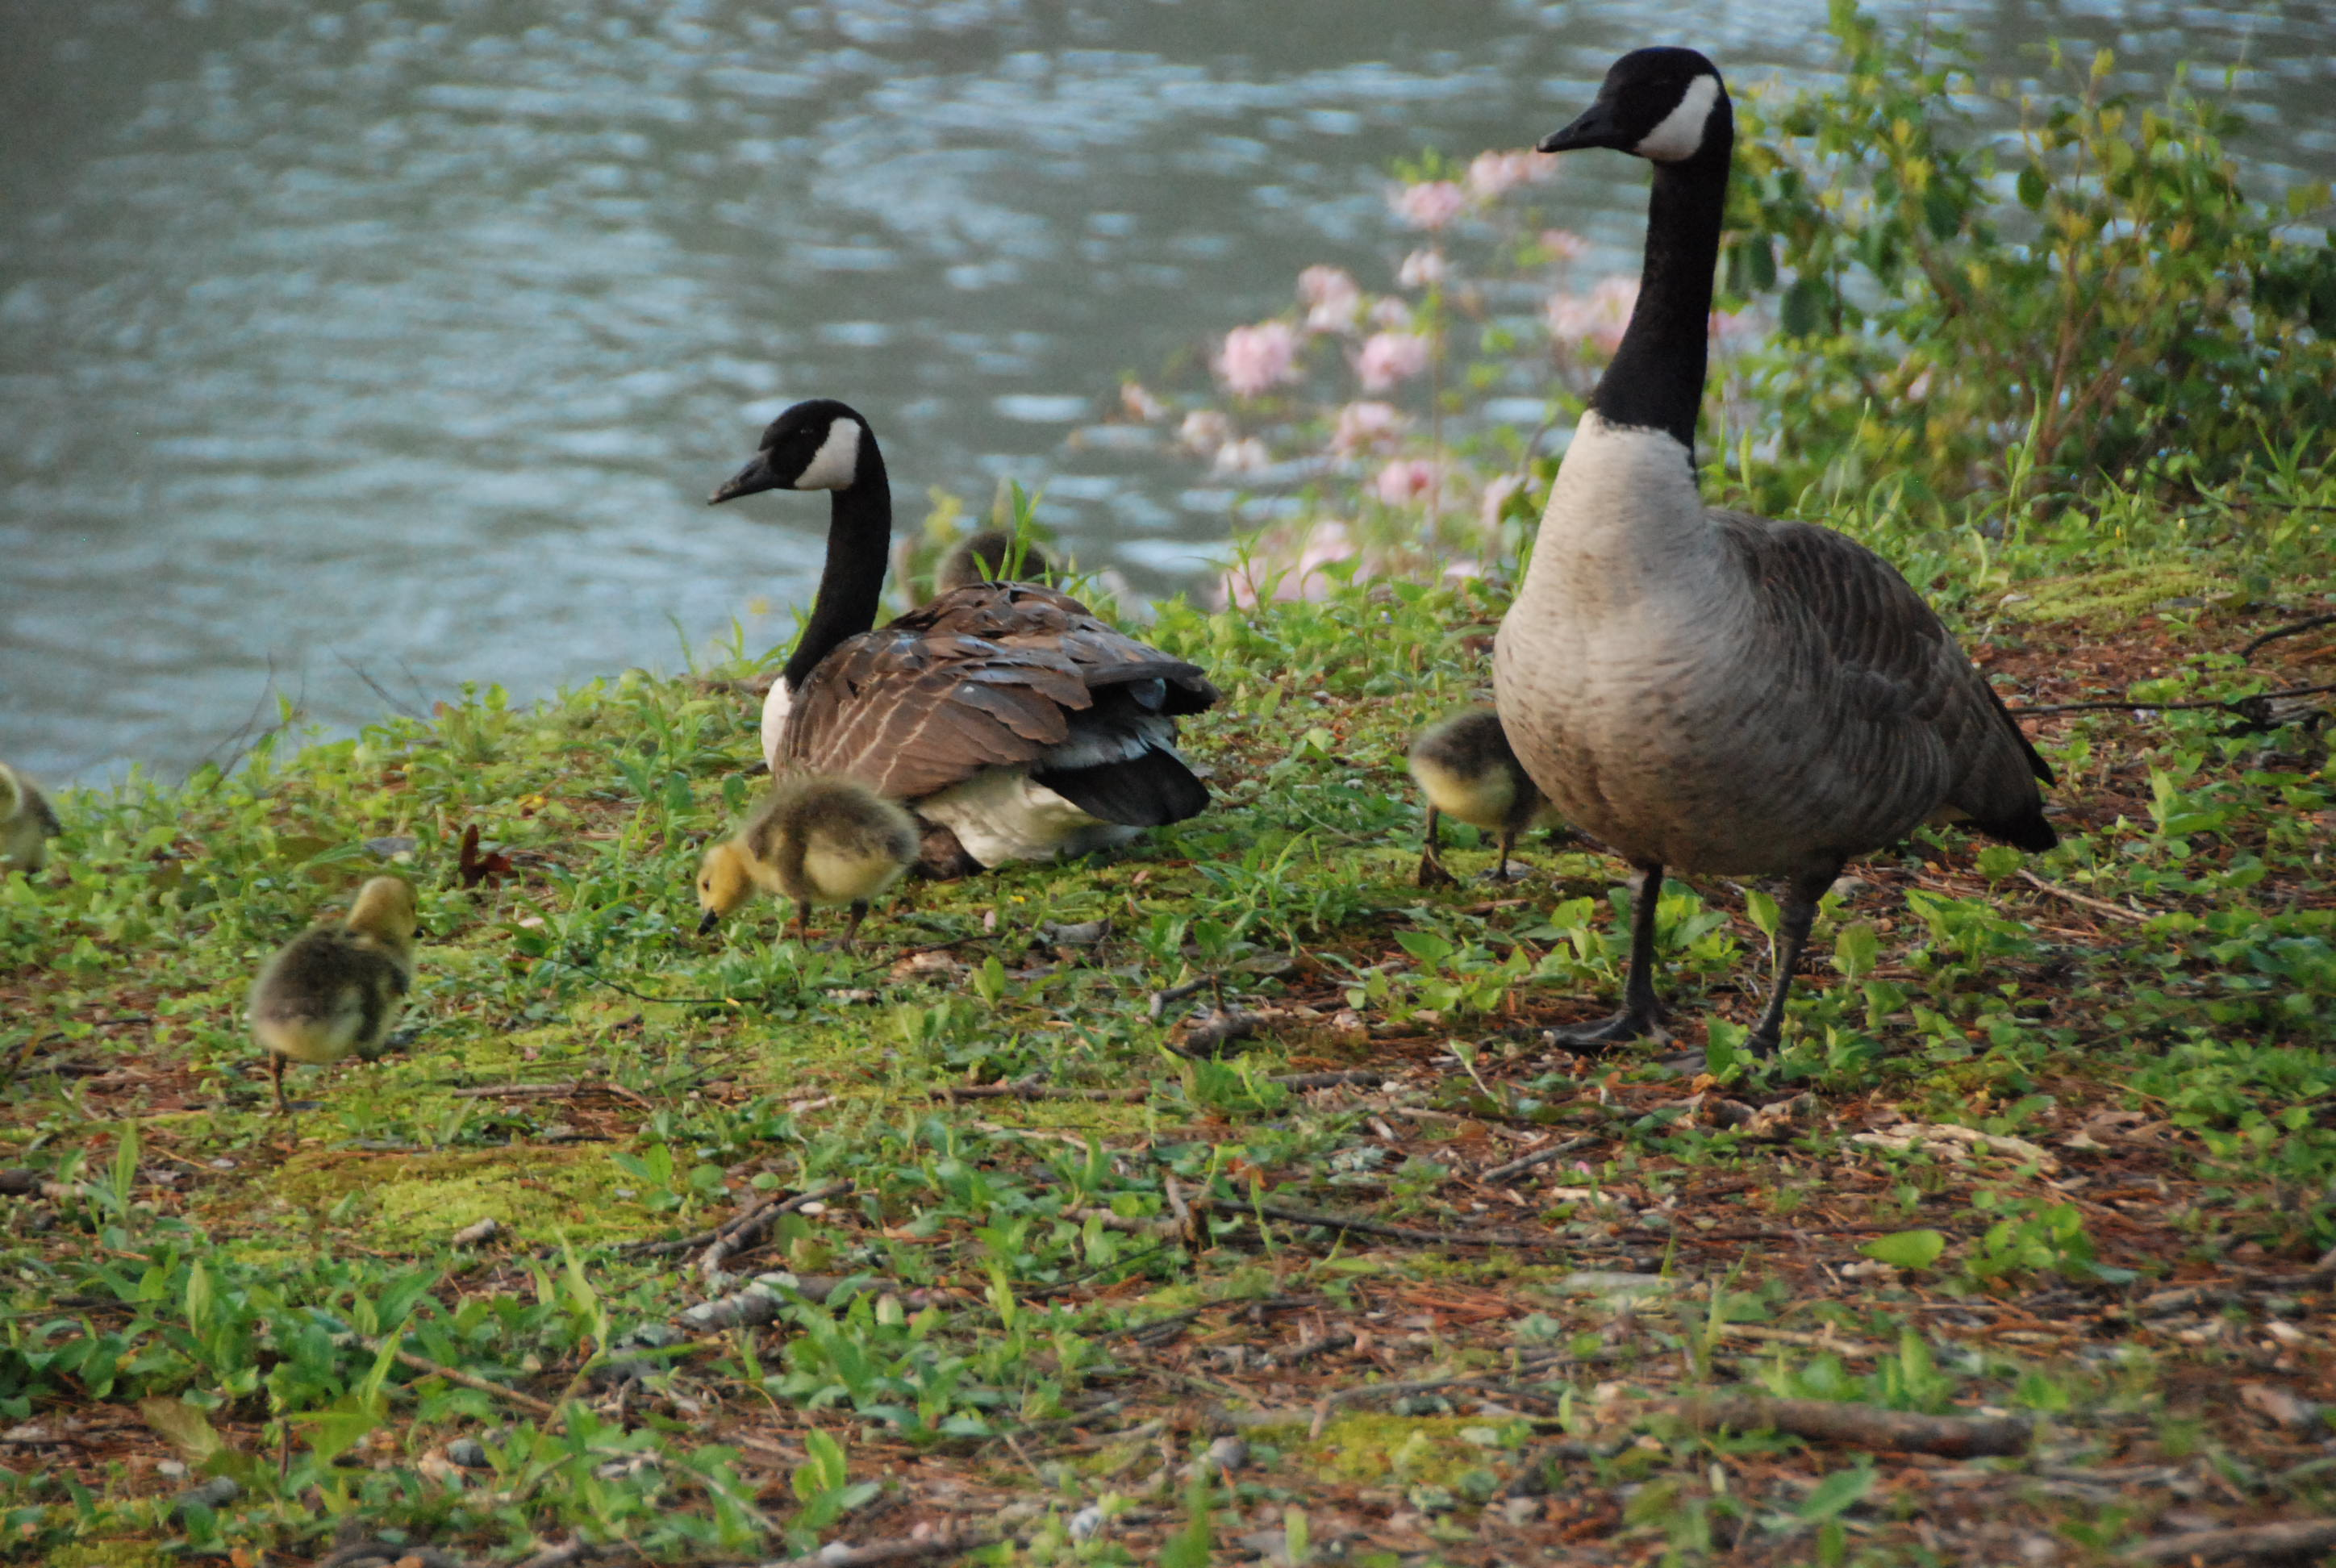 Wild Geese & Goslings at River Park